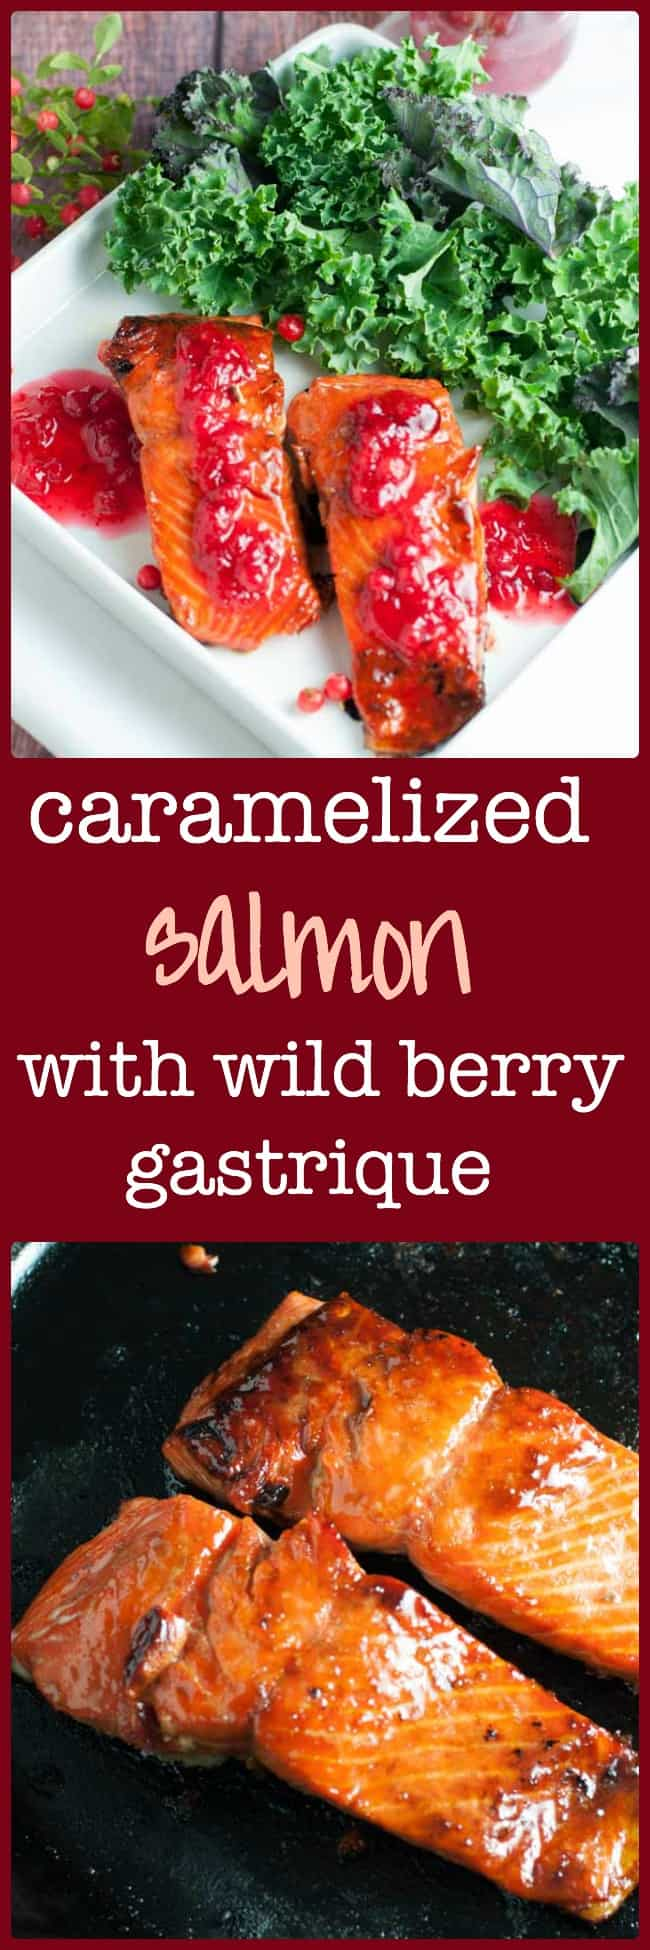 Caramelized Sockeye Salmon with Wild Berry Gastrique. Use local berries to top this sweet and salty, lightly browned crust on succulent wild fish. |www.flavourandsavour.com